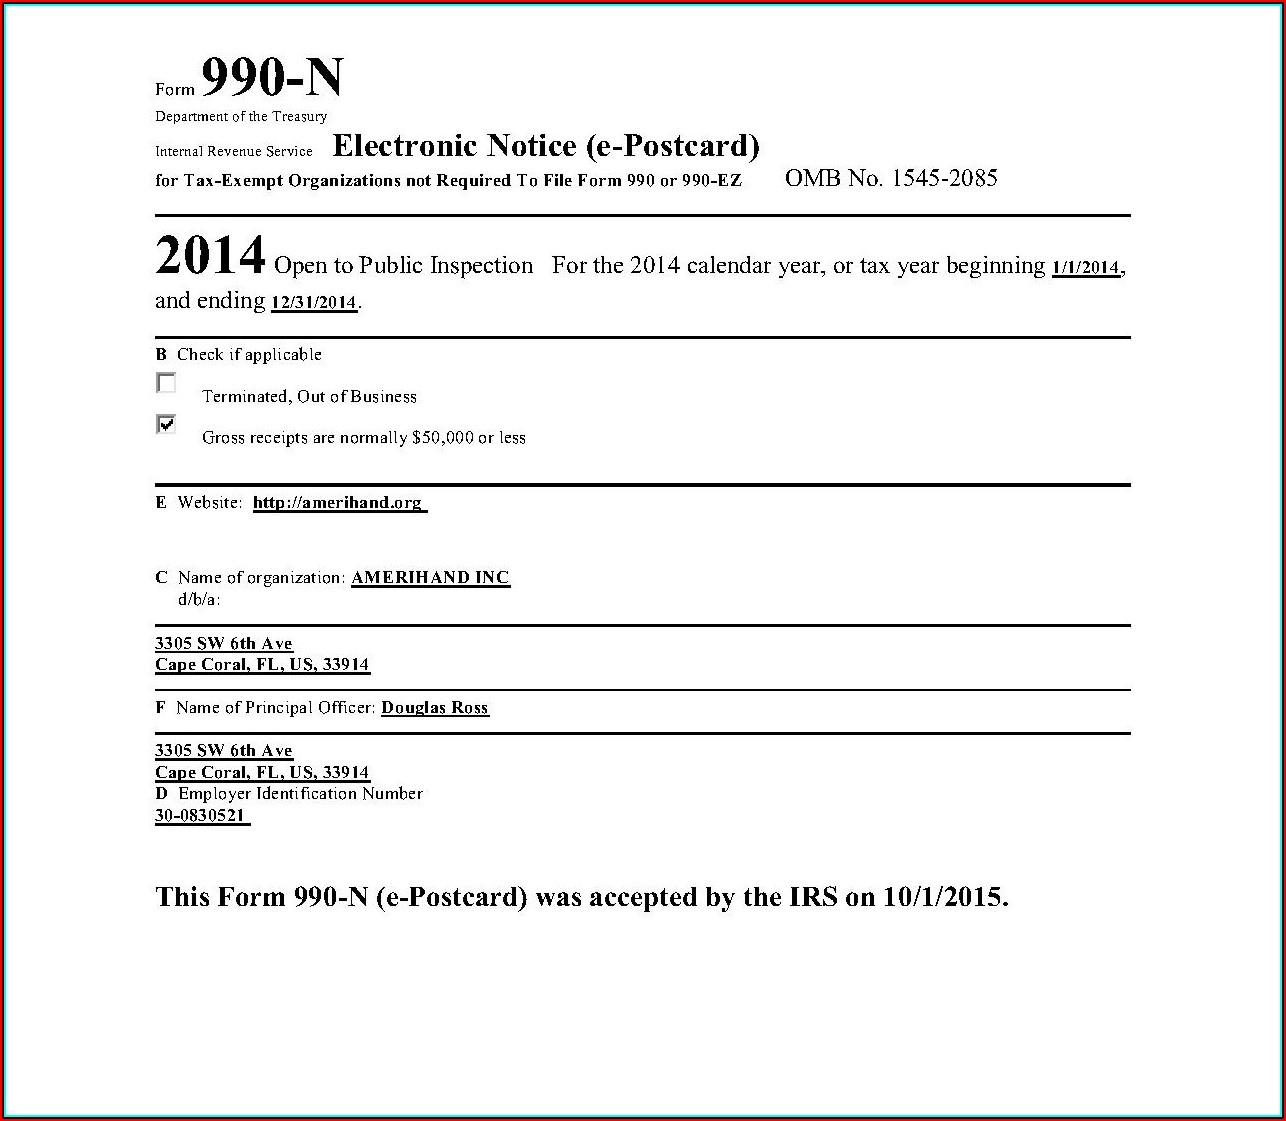 2013 Irs Form 990 N (e Postcard)